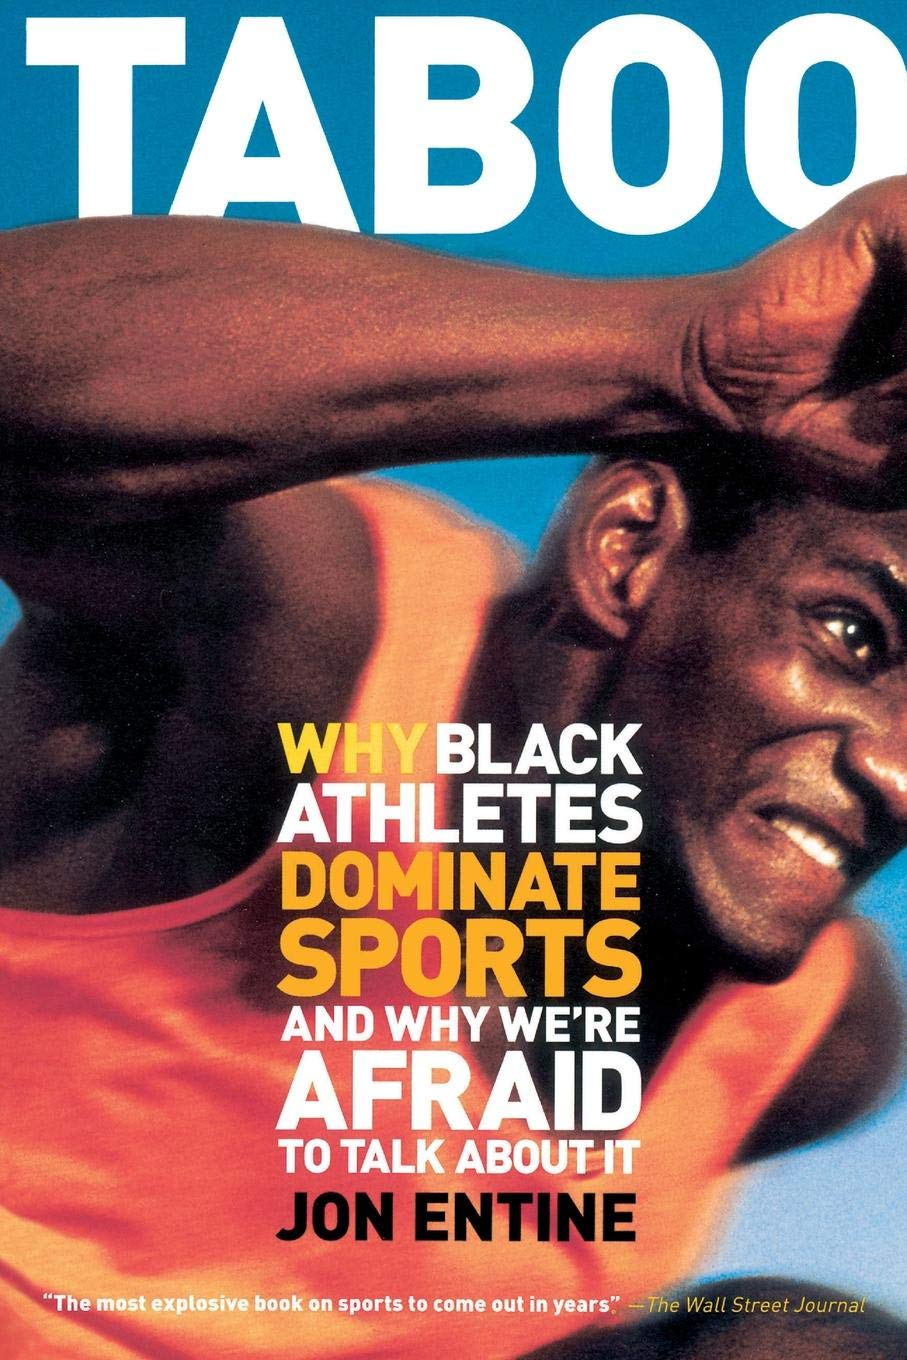 Taboo: Why Black Athletes Are Better and Why We'RE Afraid to Talk About It